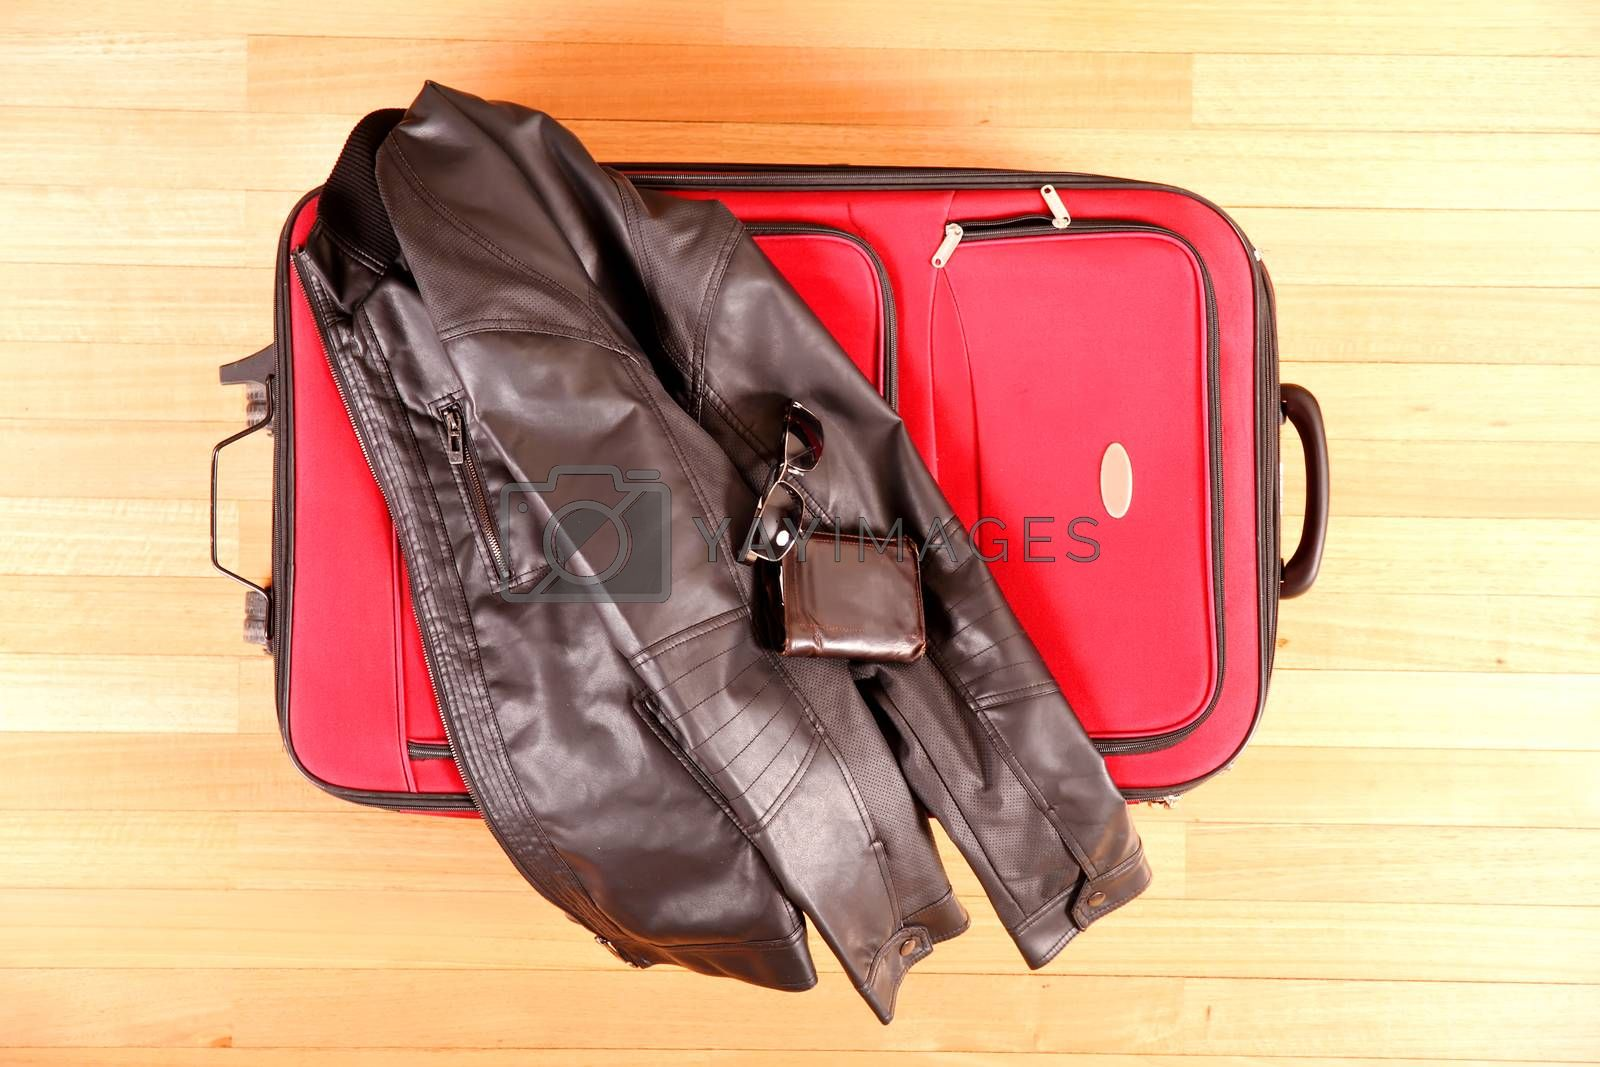 Ready to travel. A suitcase with glasses, wallet and a leather jacket.